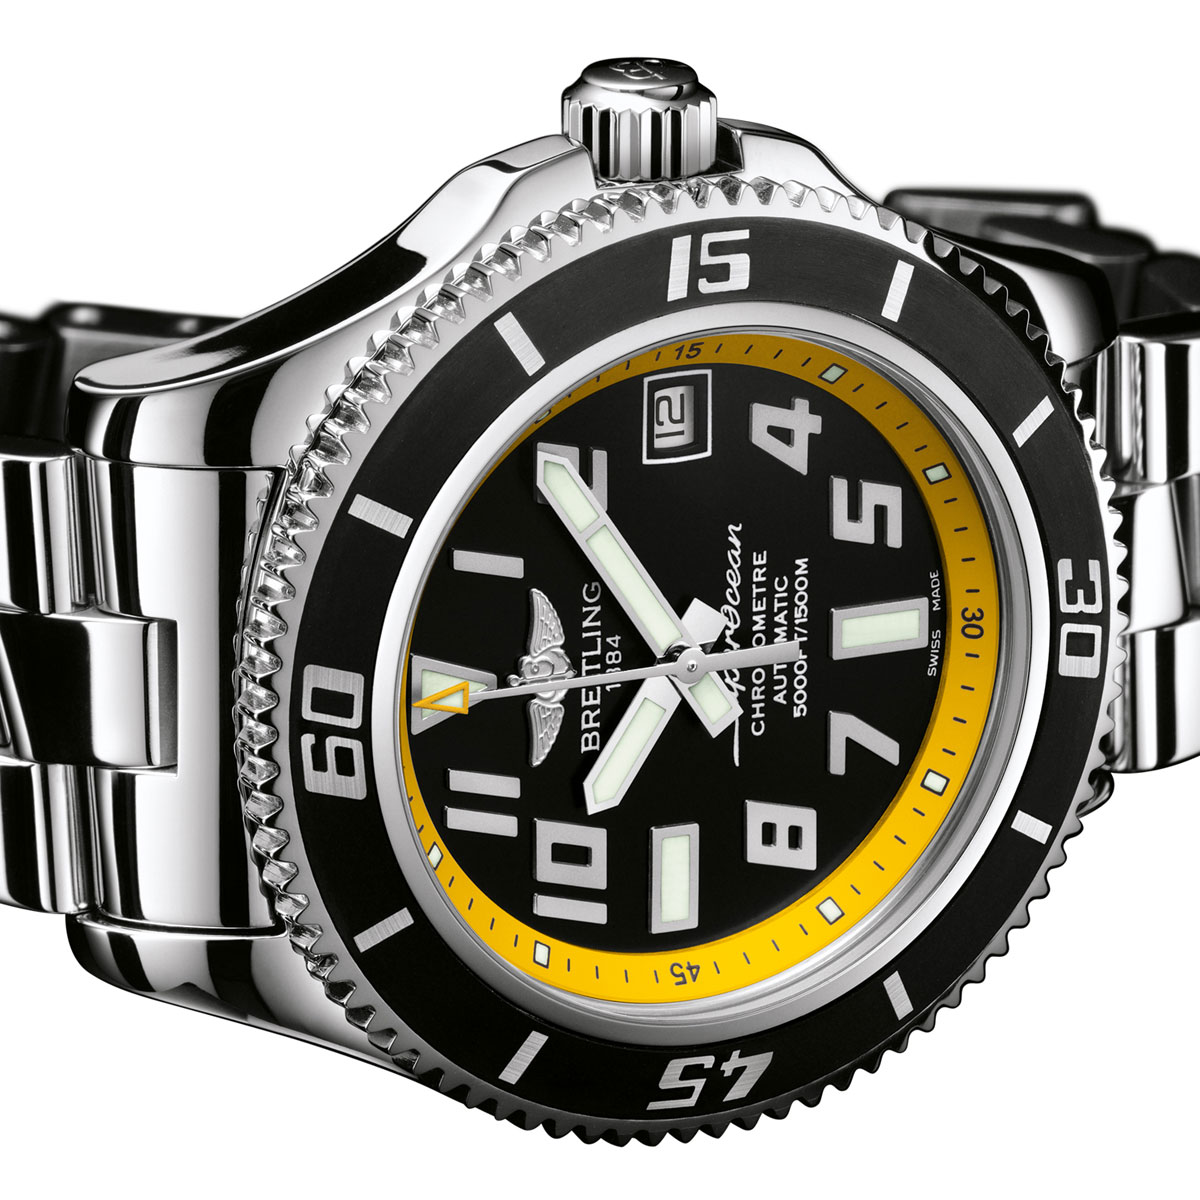 The Watch Quote: Photo - Breitling welcomes aboard Herbert Nitsch, an exceptional new pilot